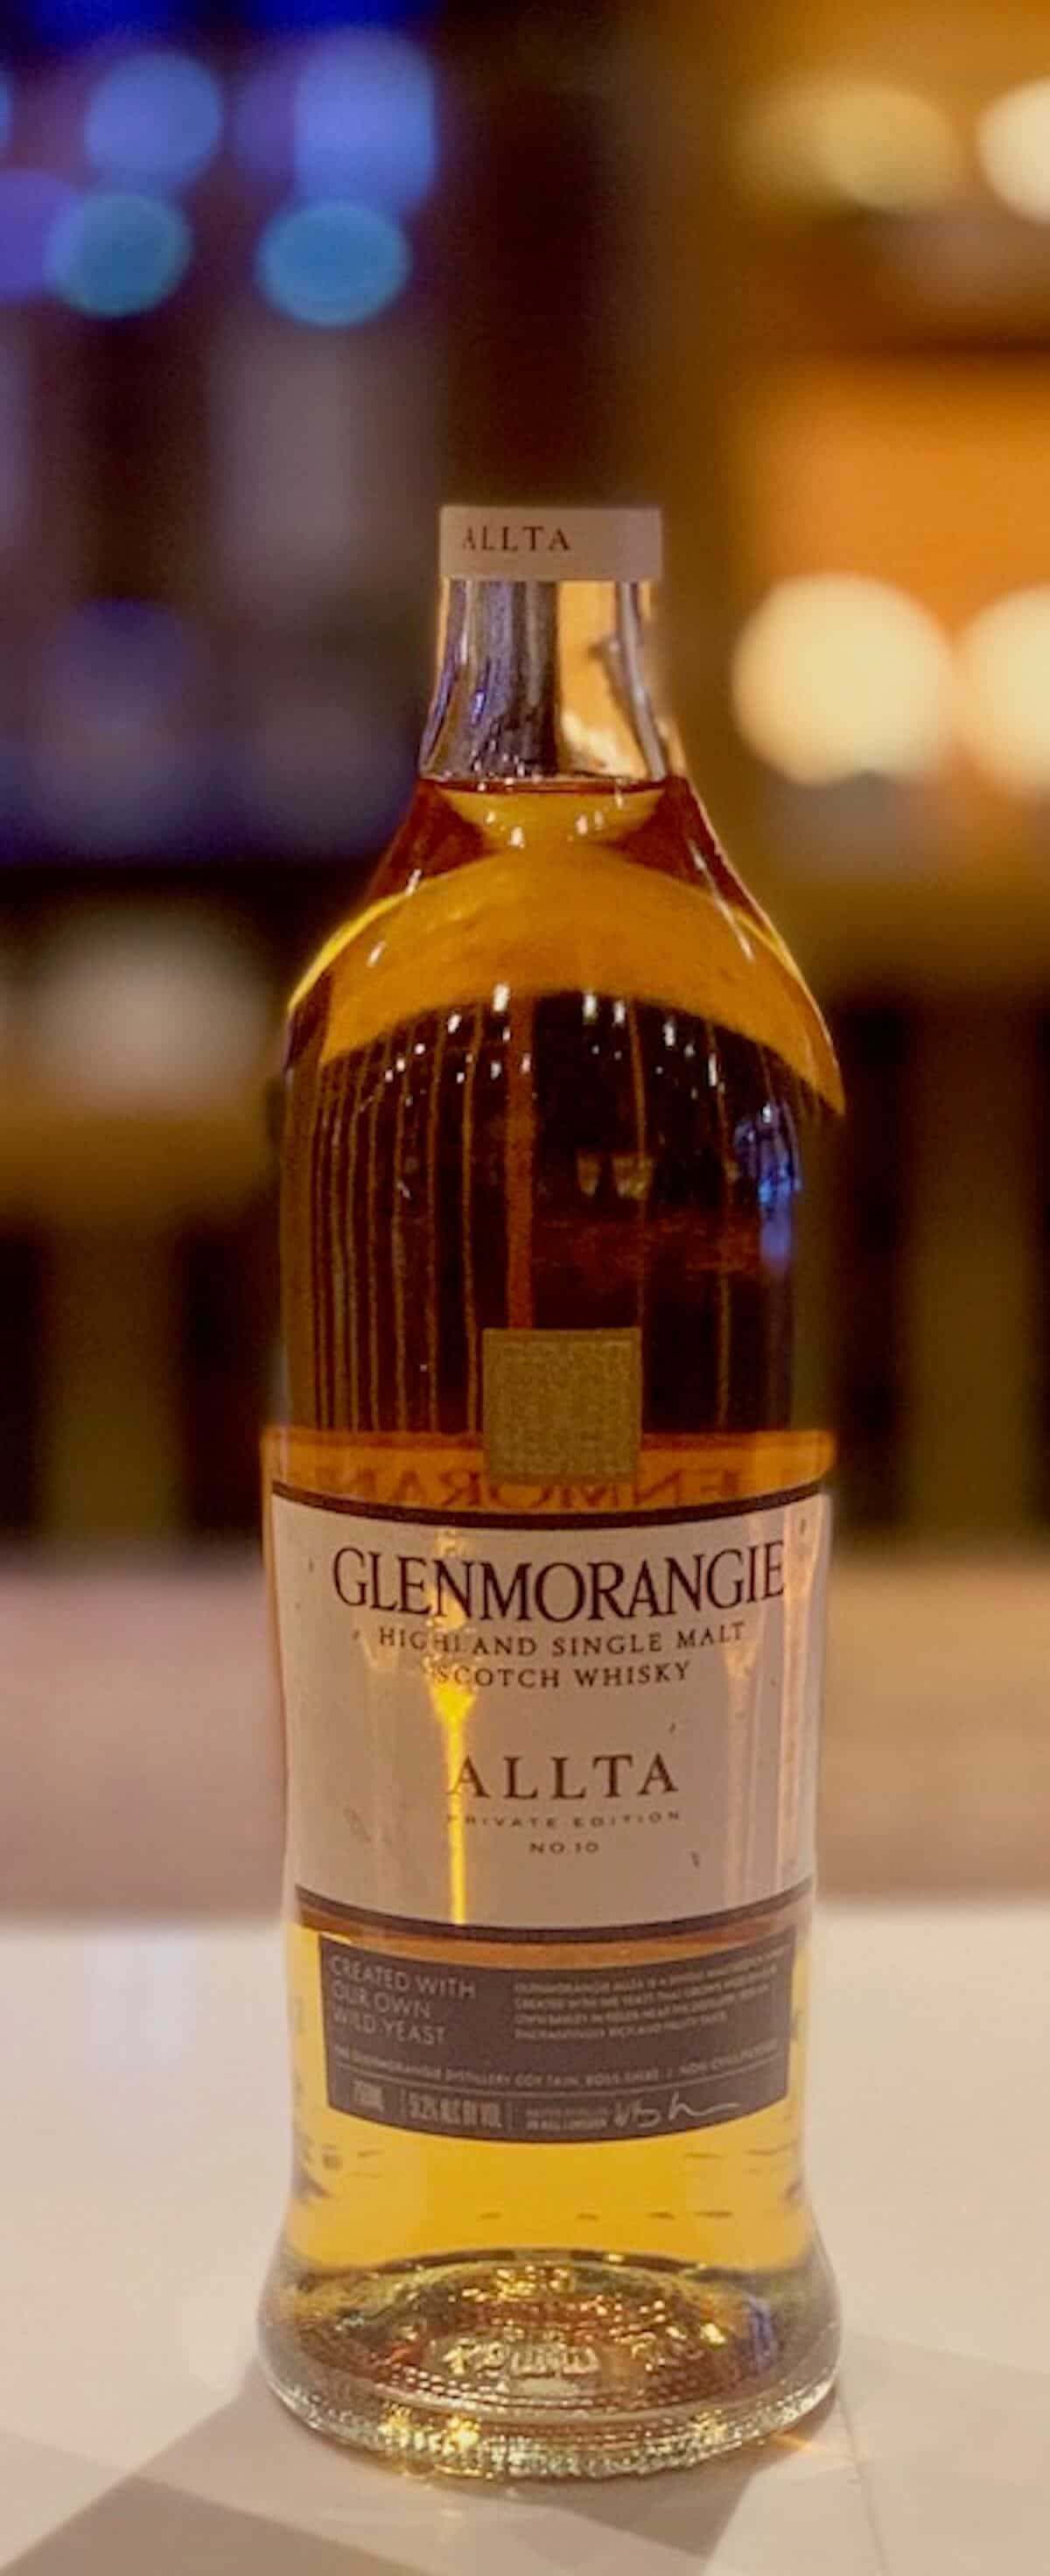 Glenmorangie Allta in bottle